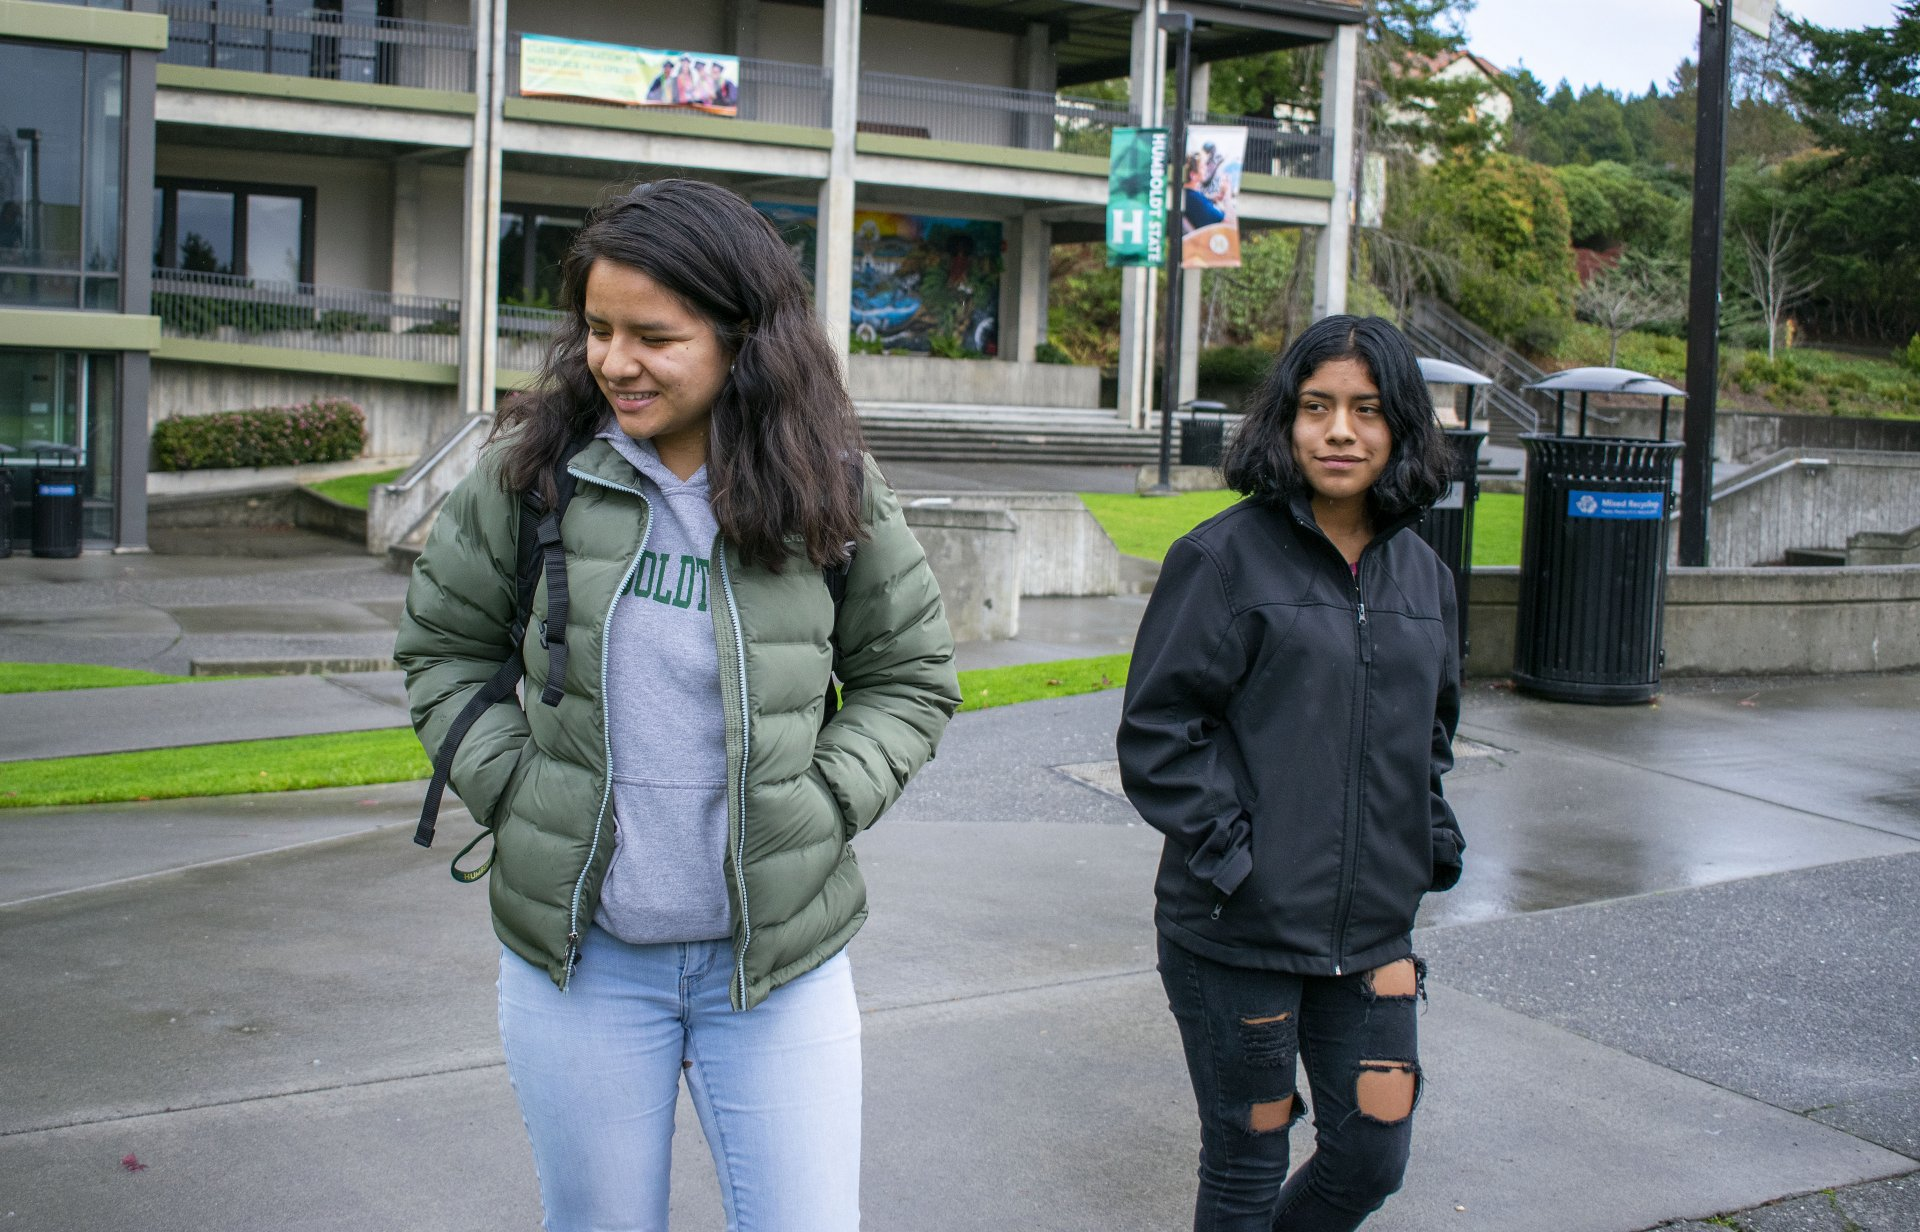 Former Associated Students President Yadira Cruz and incoming AS President Lizbeth Cano walking through the Humboldt State Quad on Dec. 7. Cano has taken over following Cruz's resignation. | Photo by James Wilde.